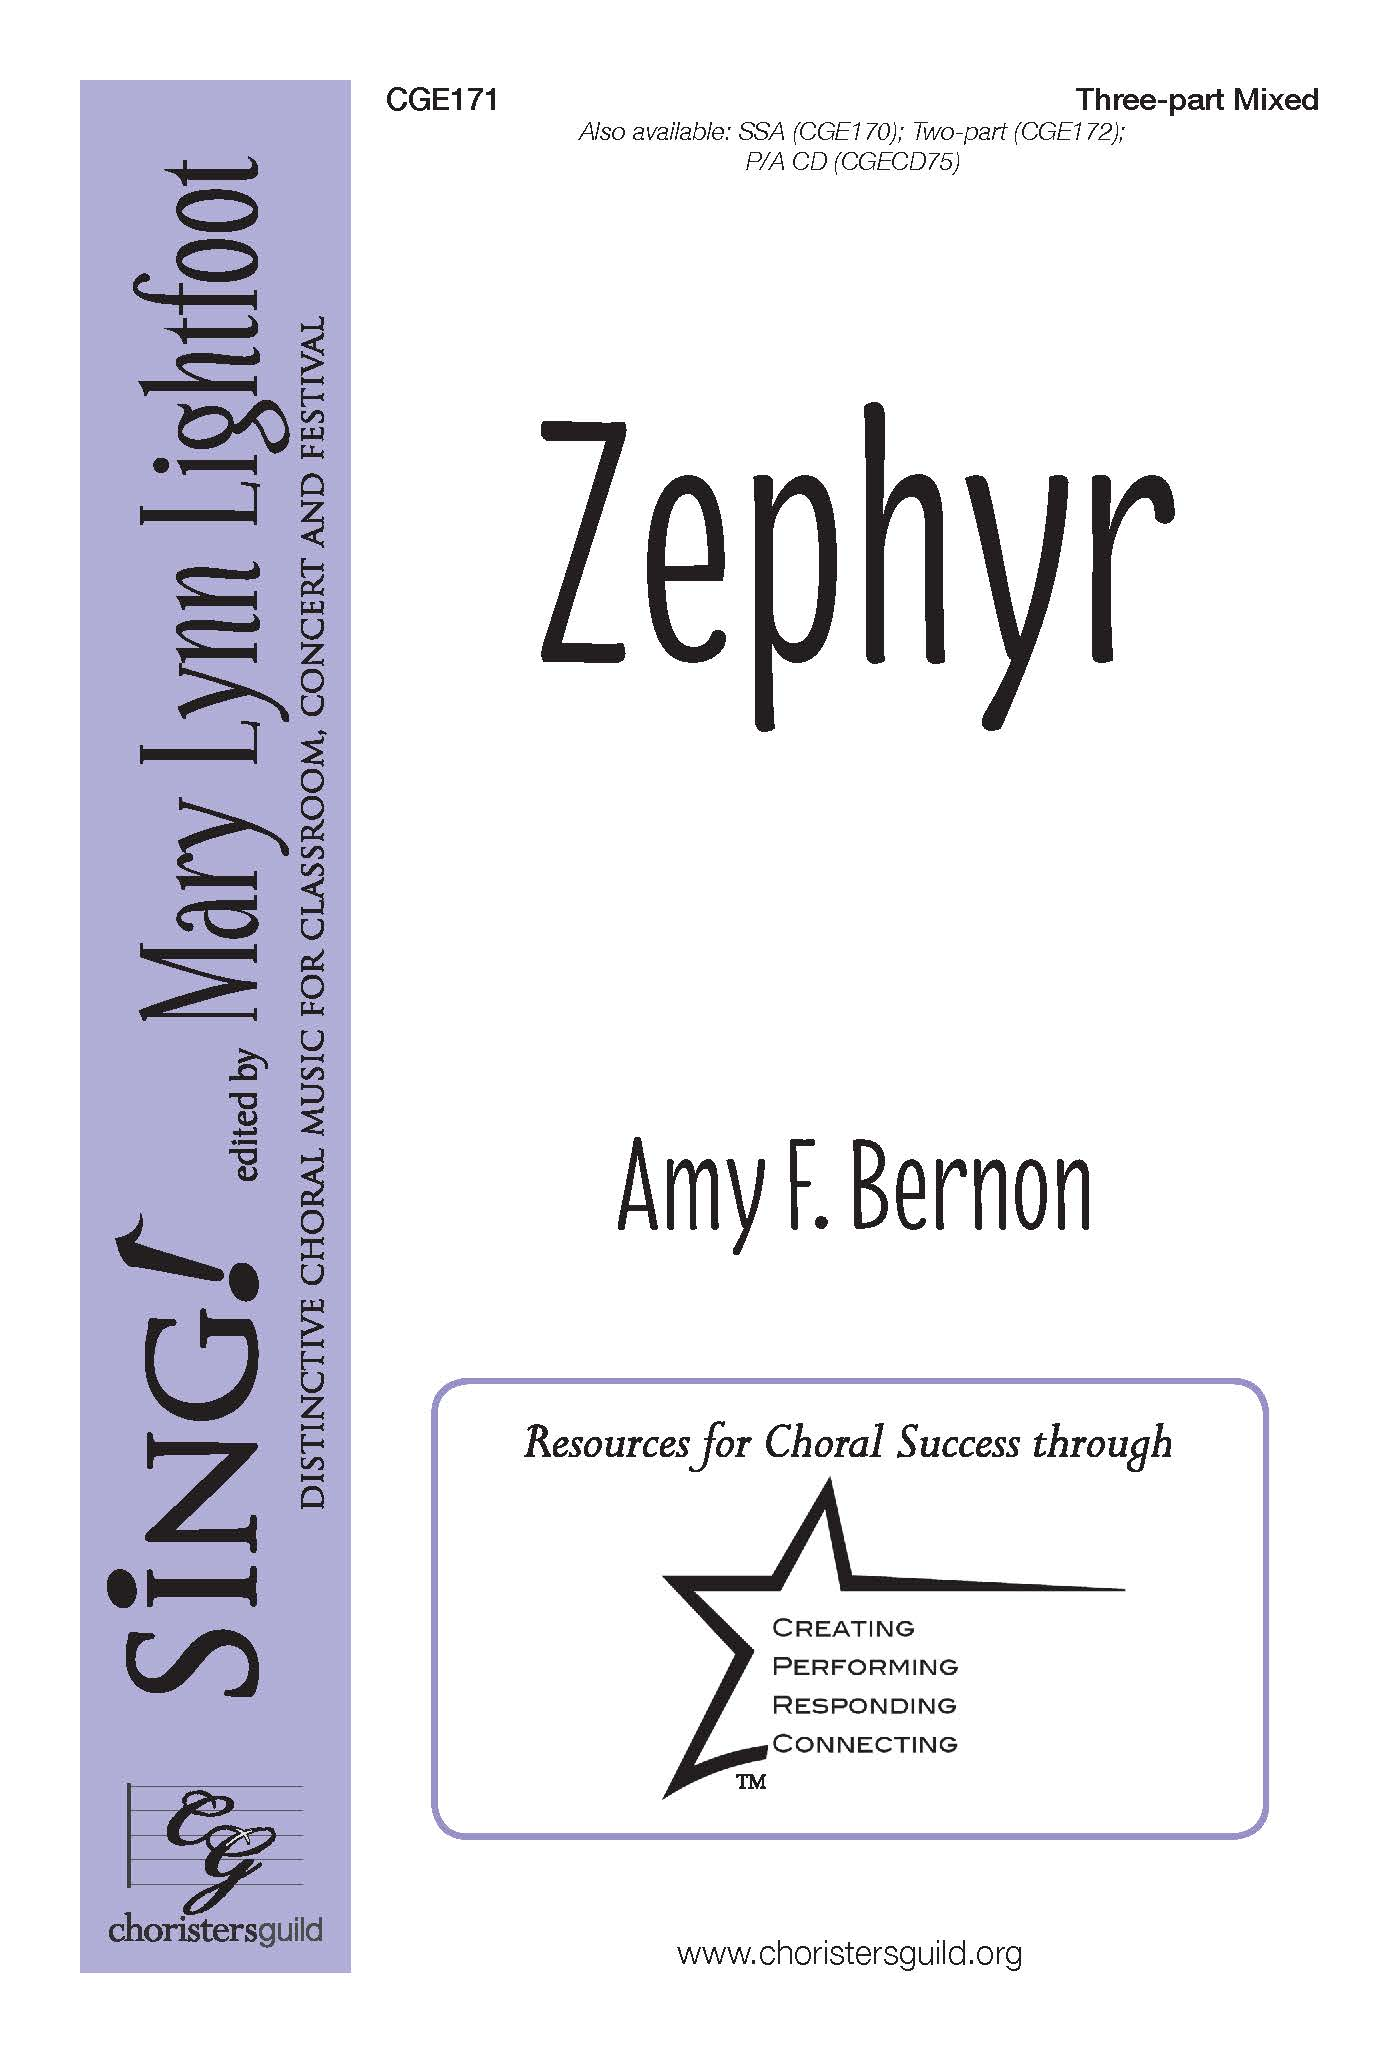 Zephyr Three-part Mixed